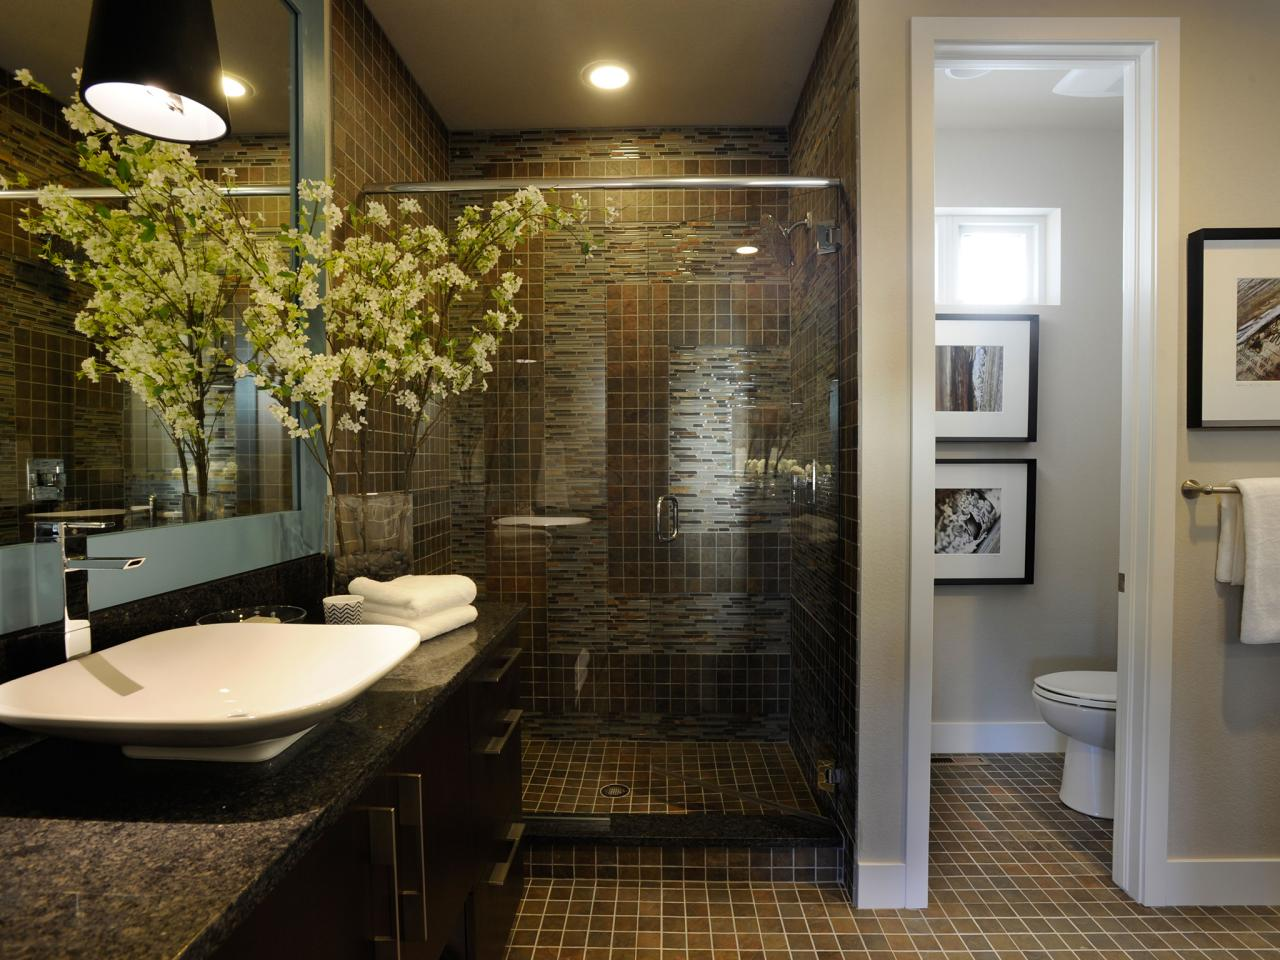 Bathroom space planning hgtv for Bathroom remodel planner